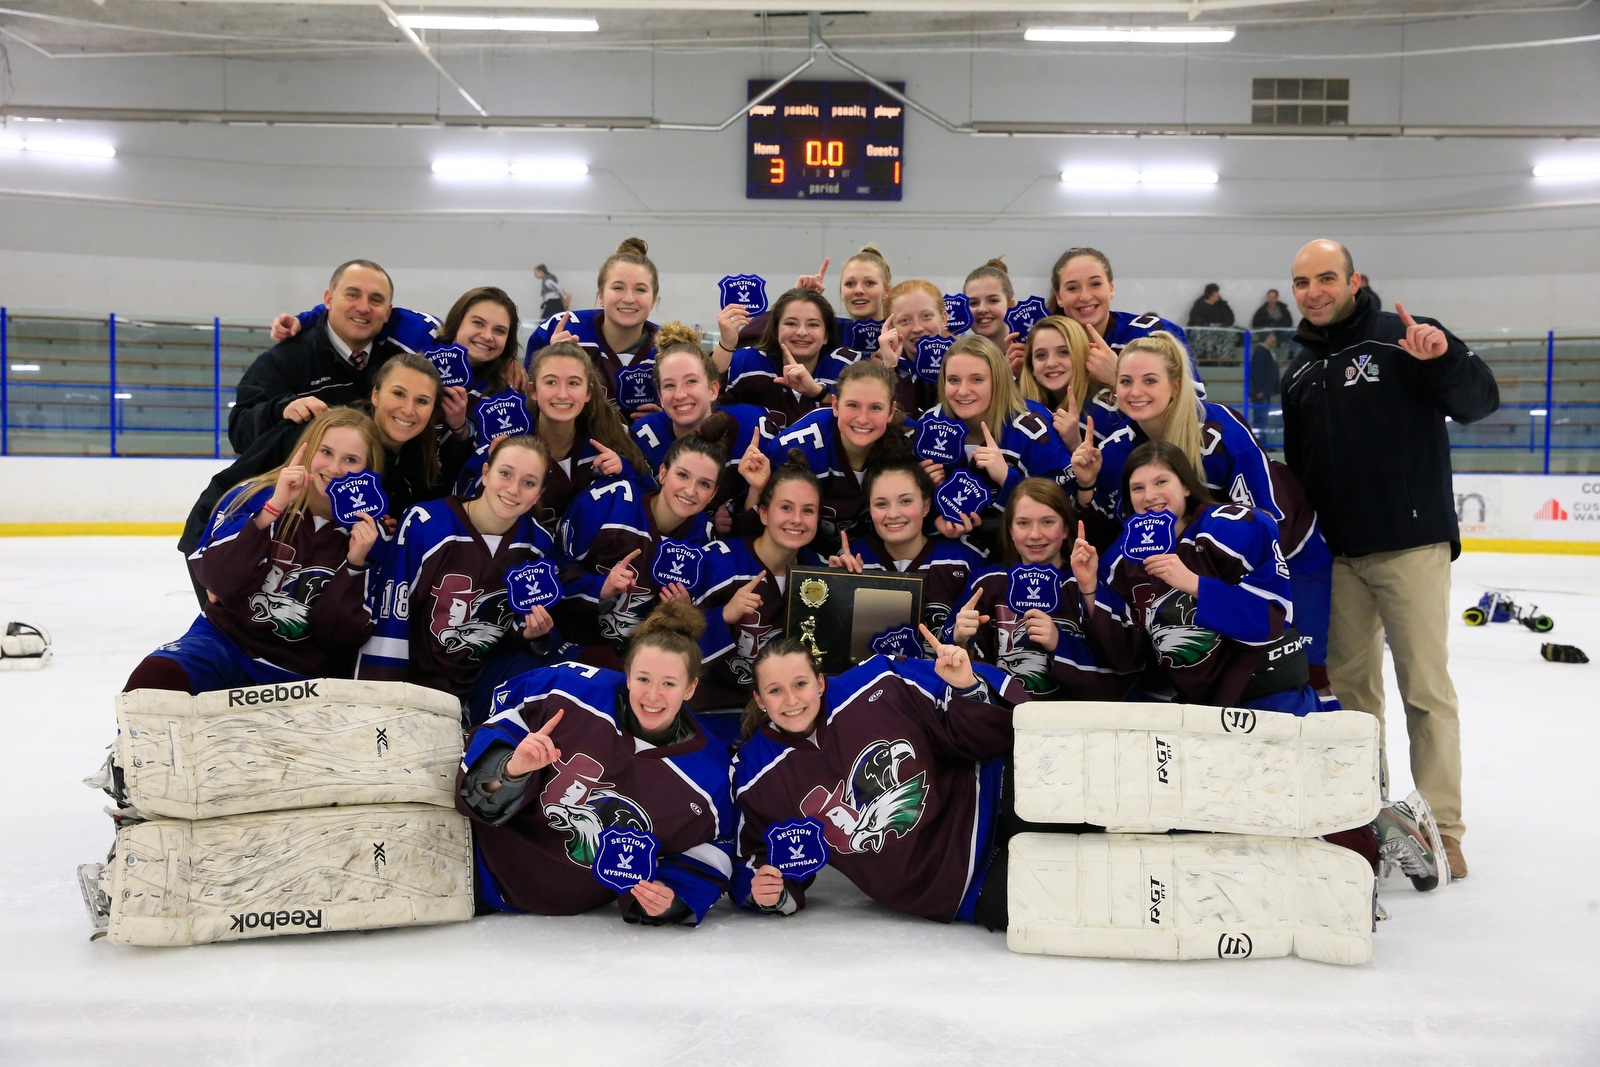 Frontier/Lakeshore/Orchard Park celebrates a 3-1 victory over Williamsville for the Section VI Girls hockey championship at the Northtown Center on Wednesday, Feb. 7, 2018.